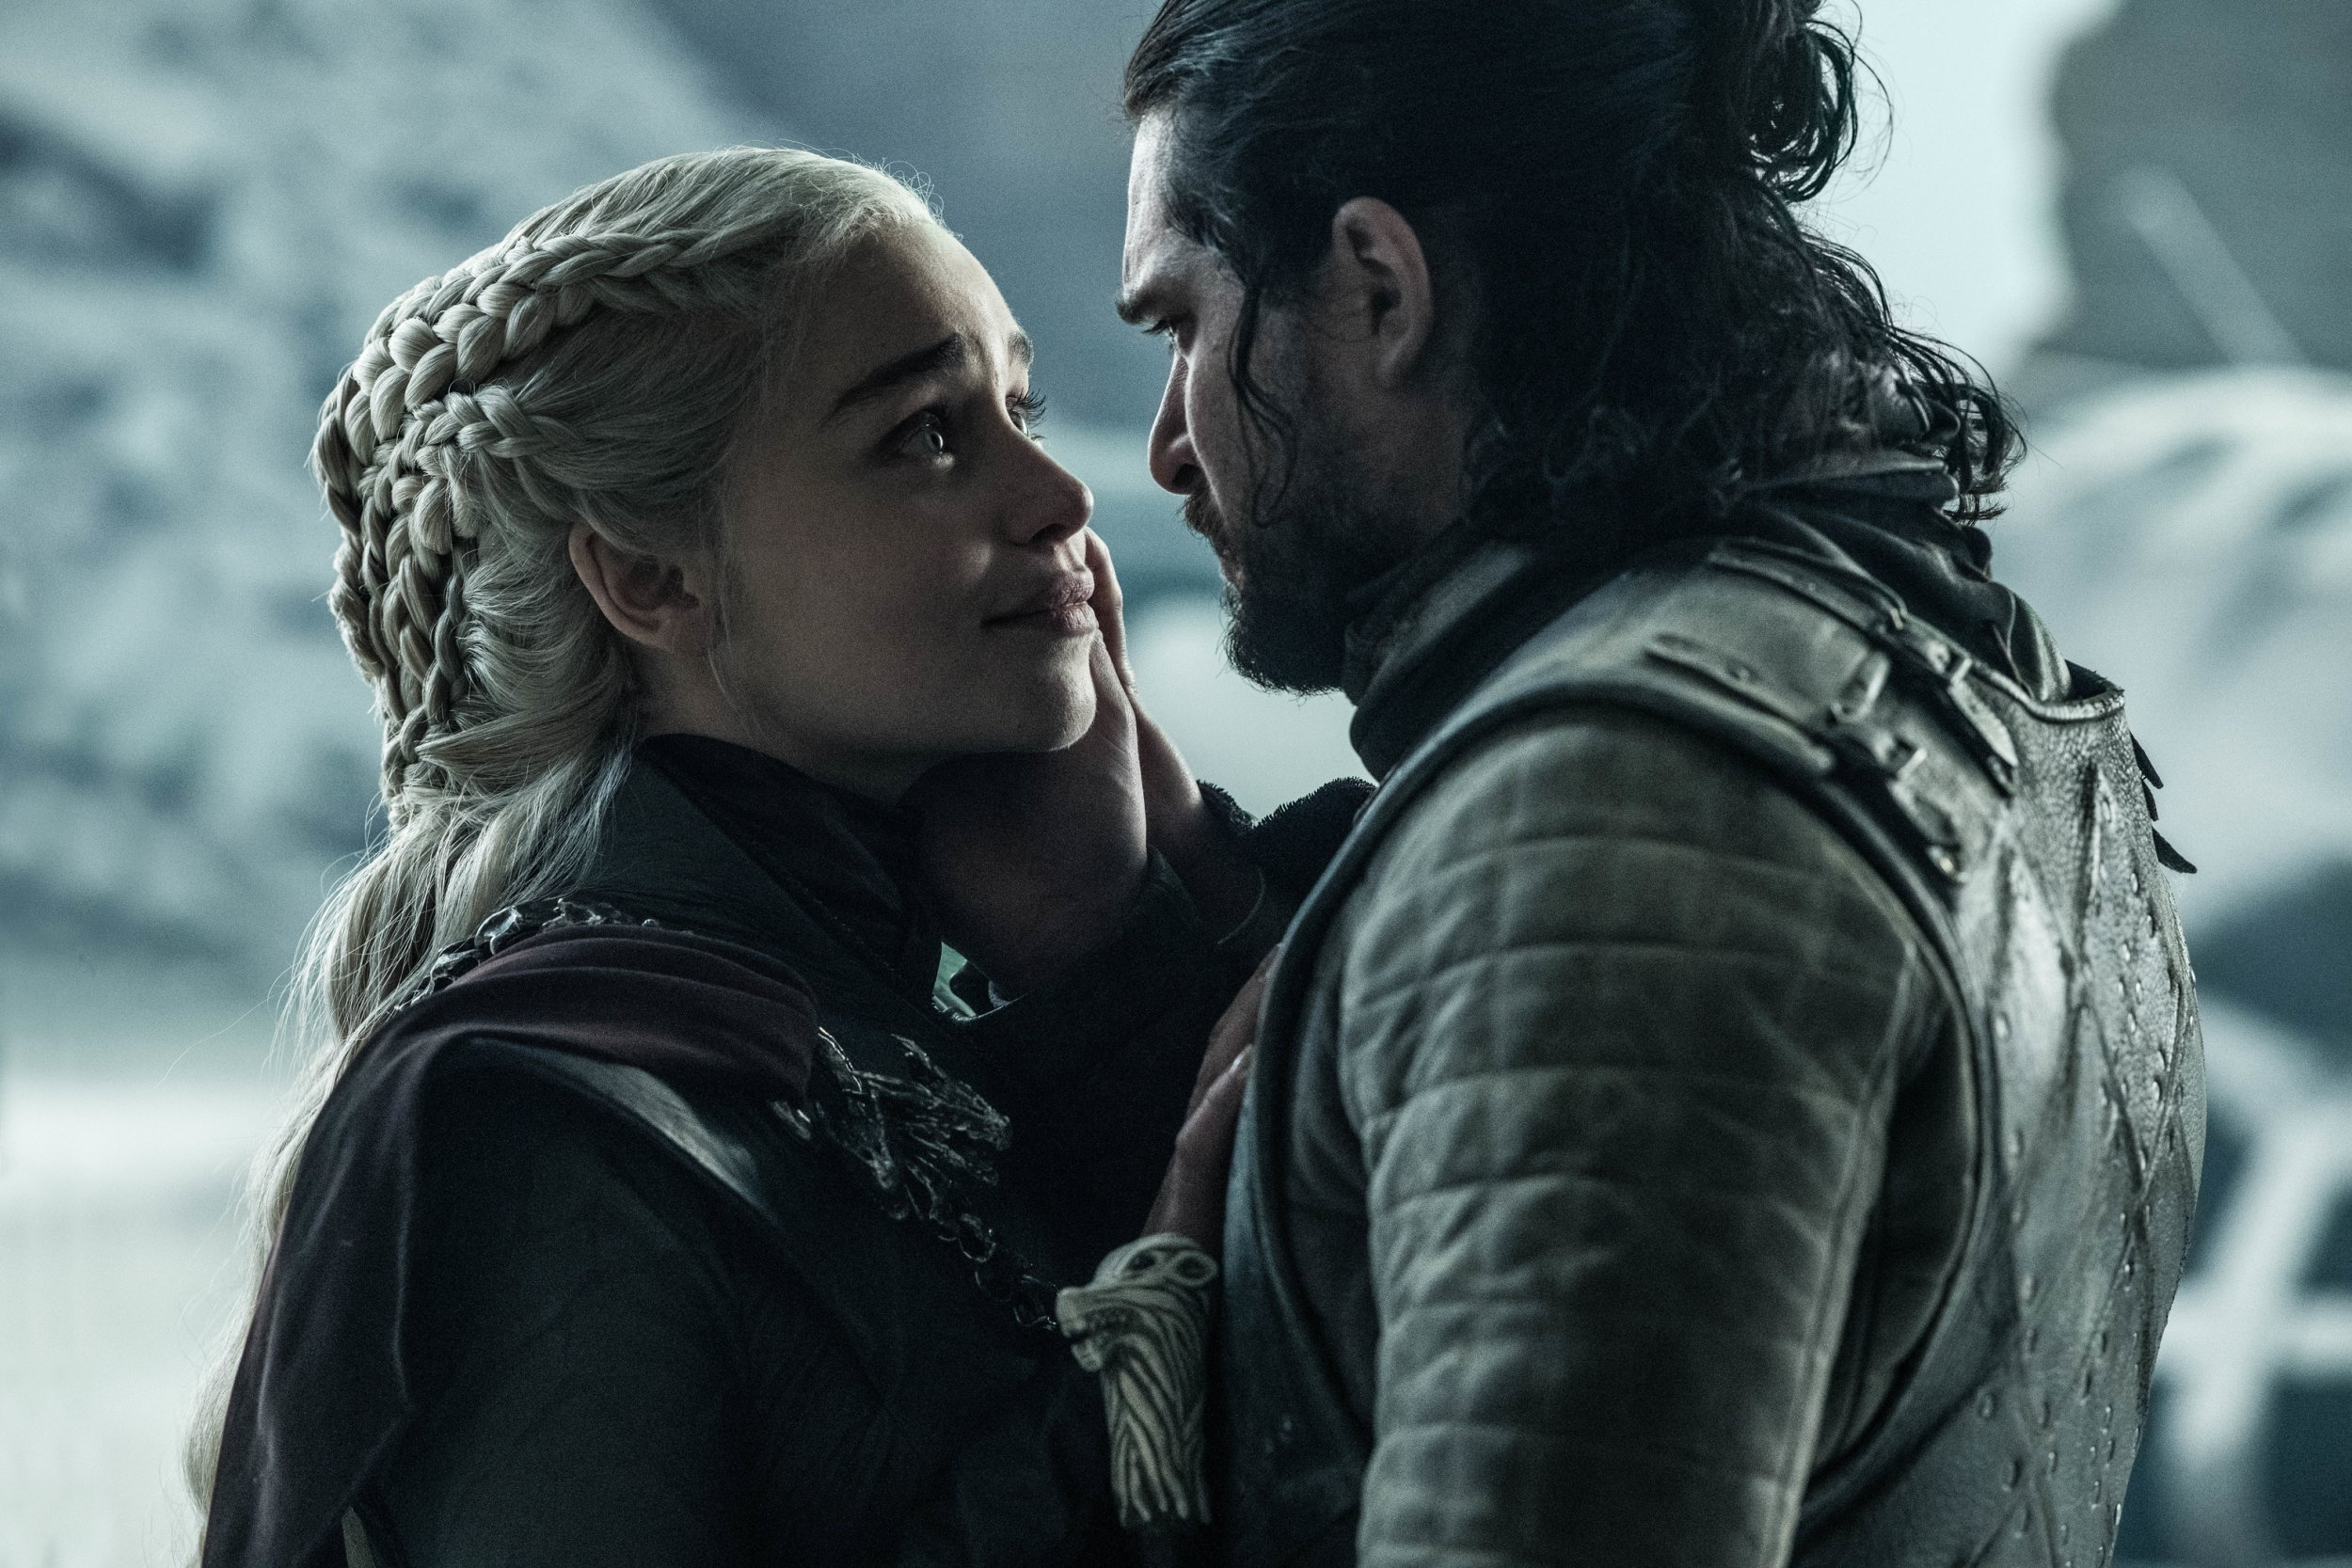 The 'Game of Thrones' Series Finale Had Another Coffee Cup